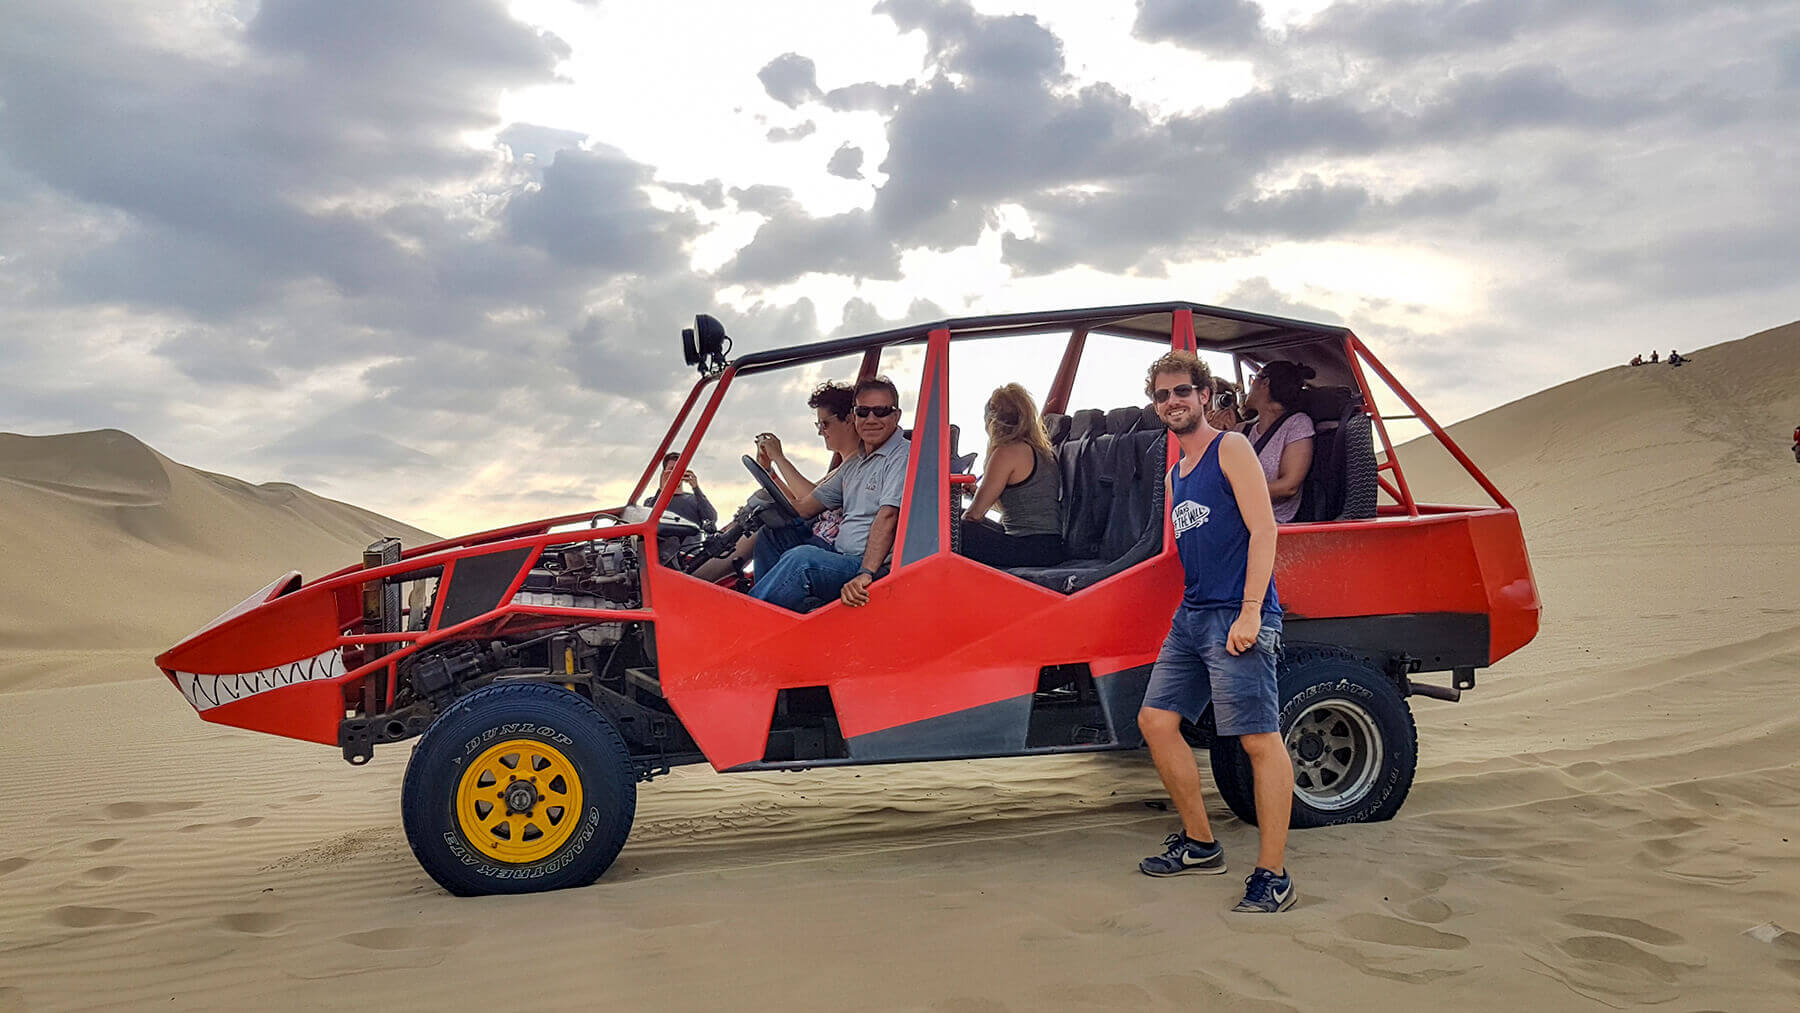 Ydwer next to our Sand Buggy in the dunes of Huacachina Peru